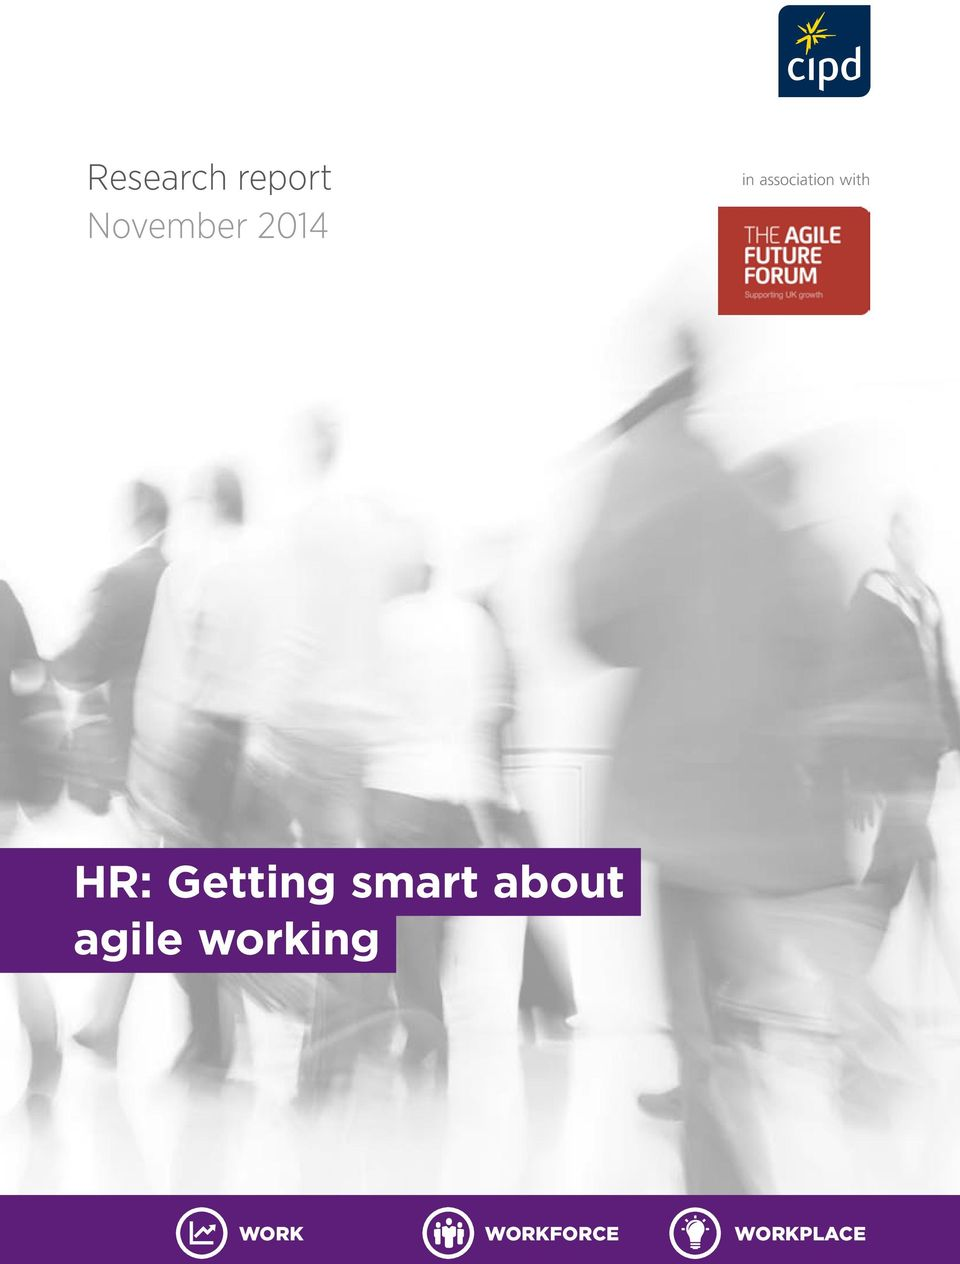 HR: Getting smart about